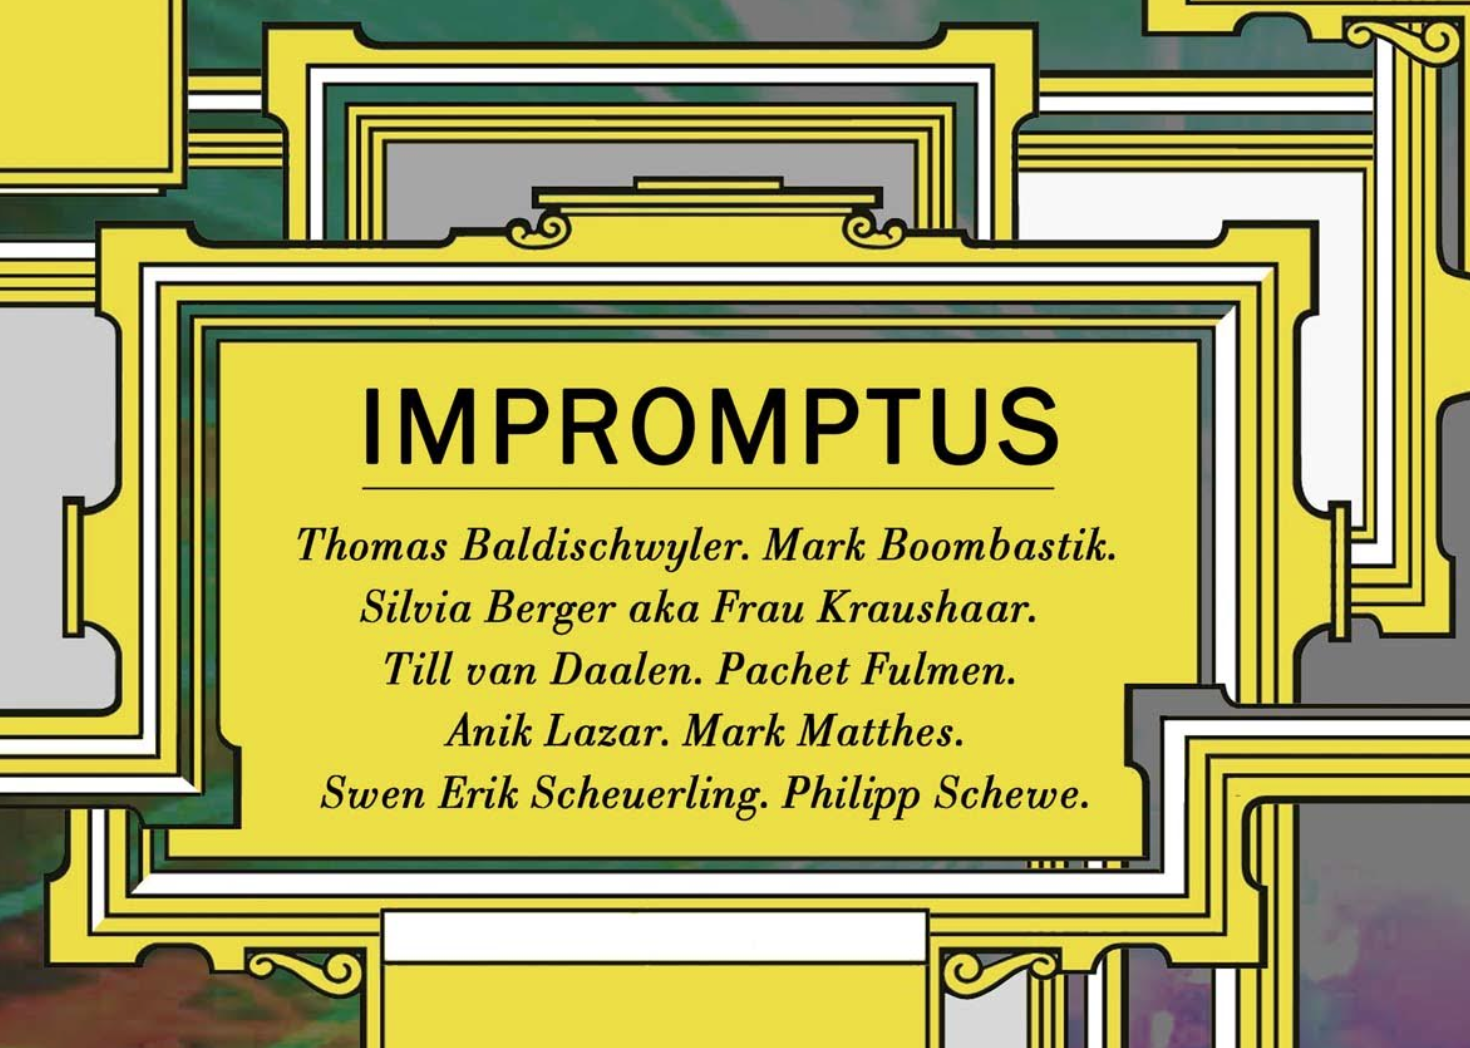 IMPROMPTUS - invitation